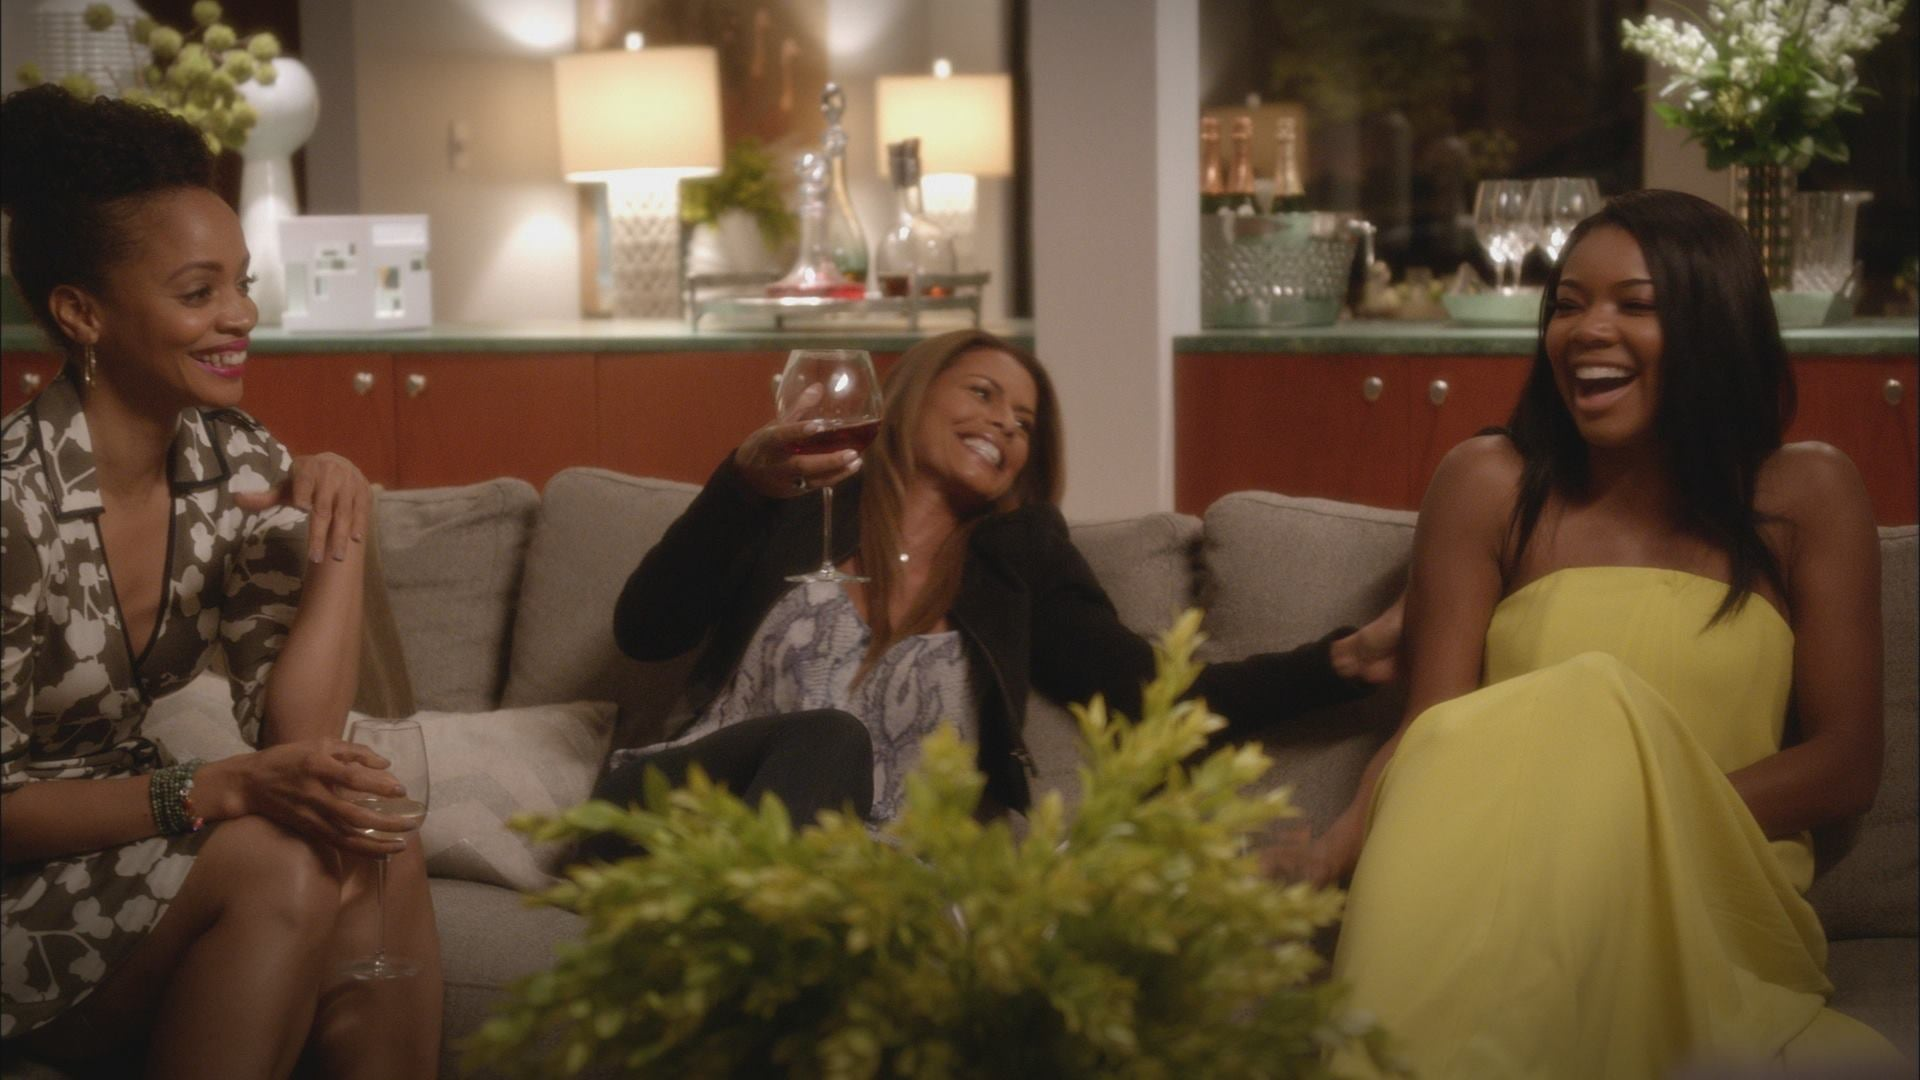 Two Days After Premiere, 'Being Mary Jane' Picked Up for Season 3